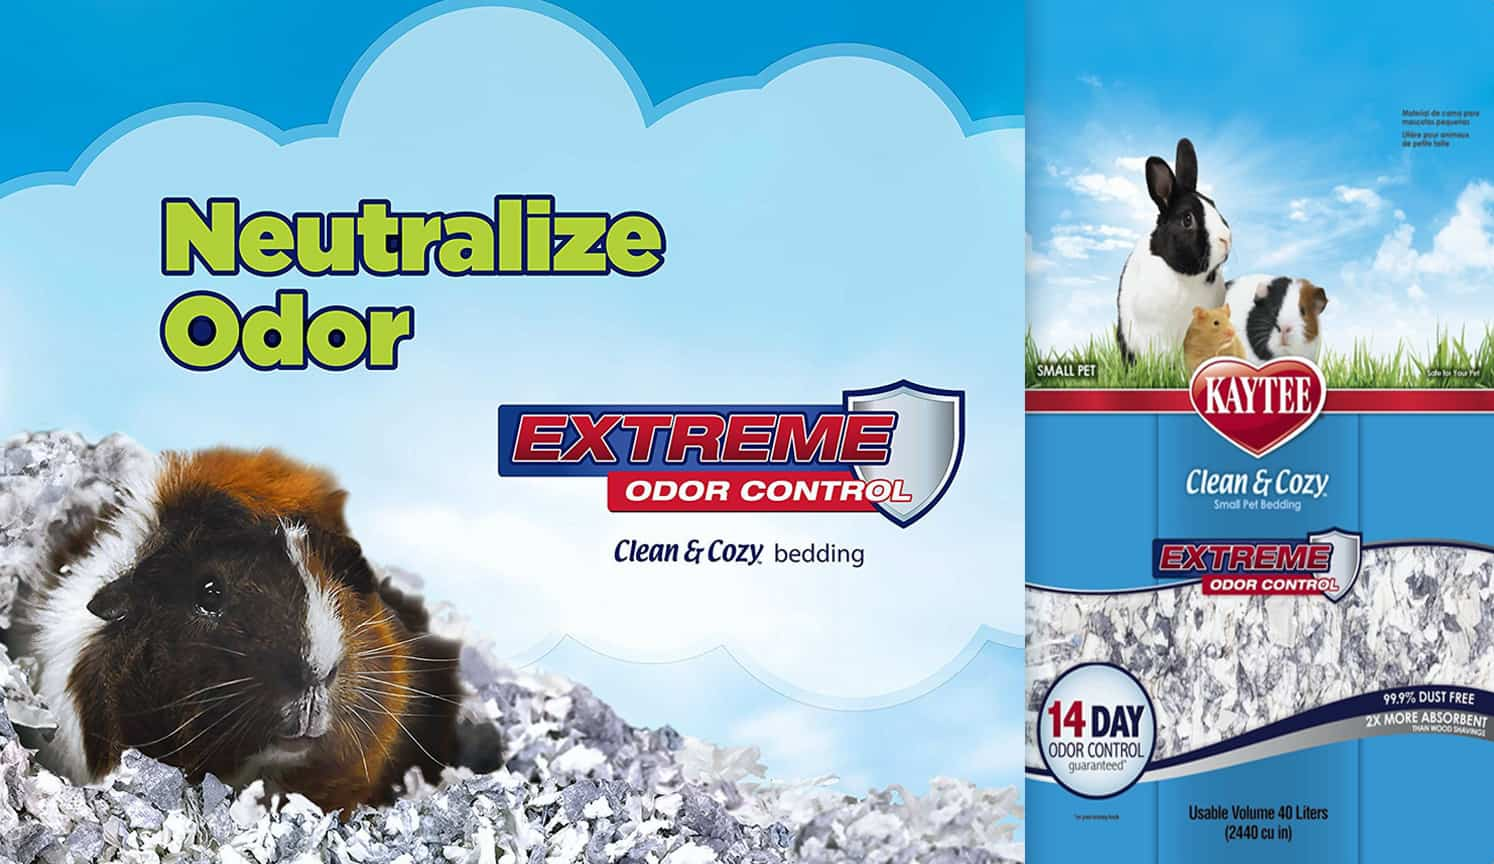 Safe Bedding For Rabbits as the first related product of the Best Rabbit Bedding